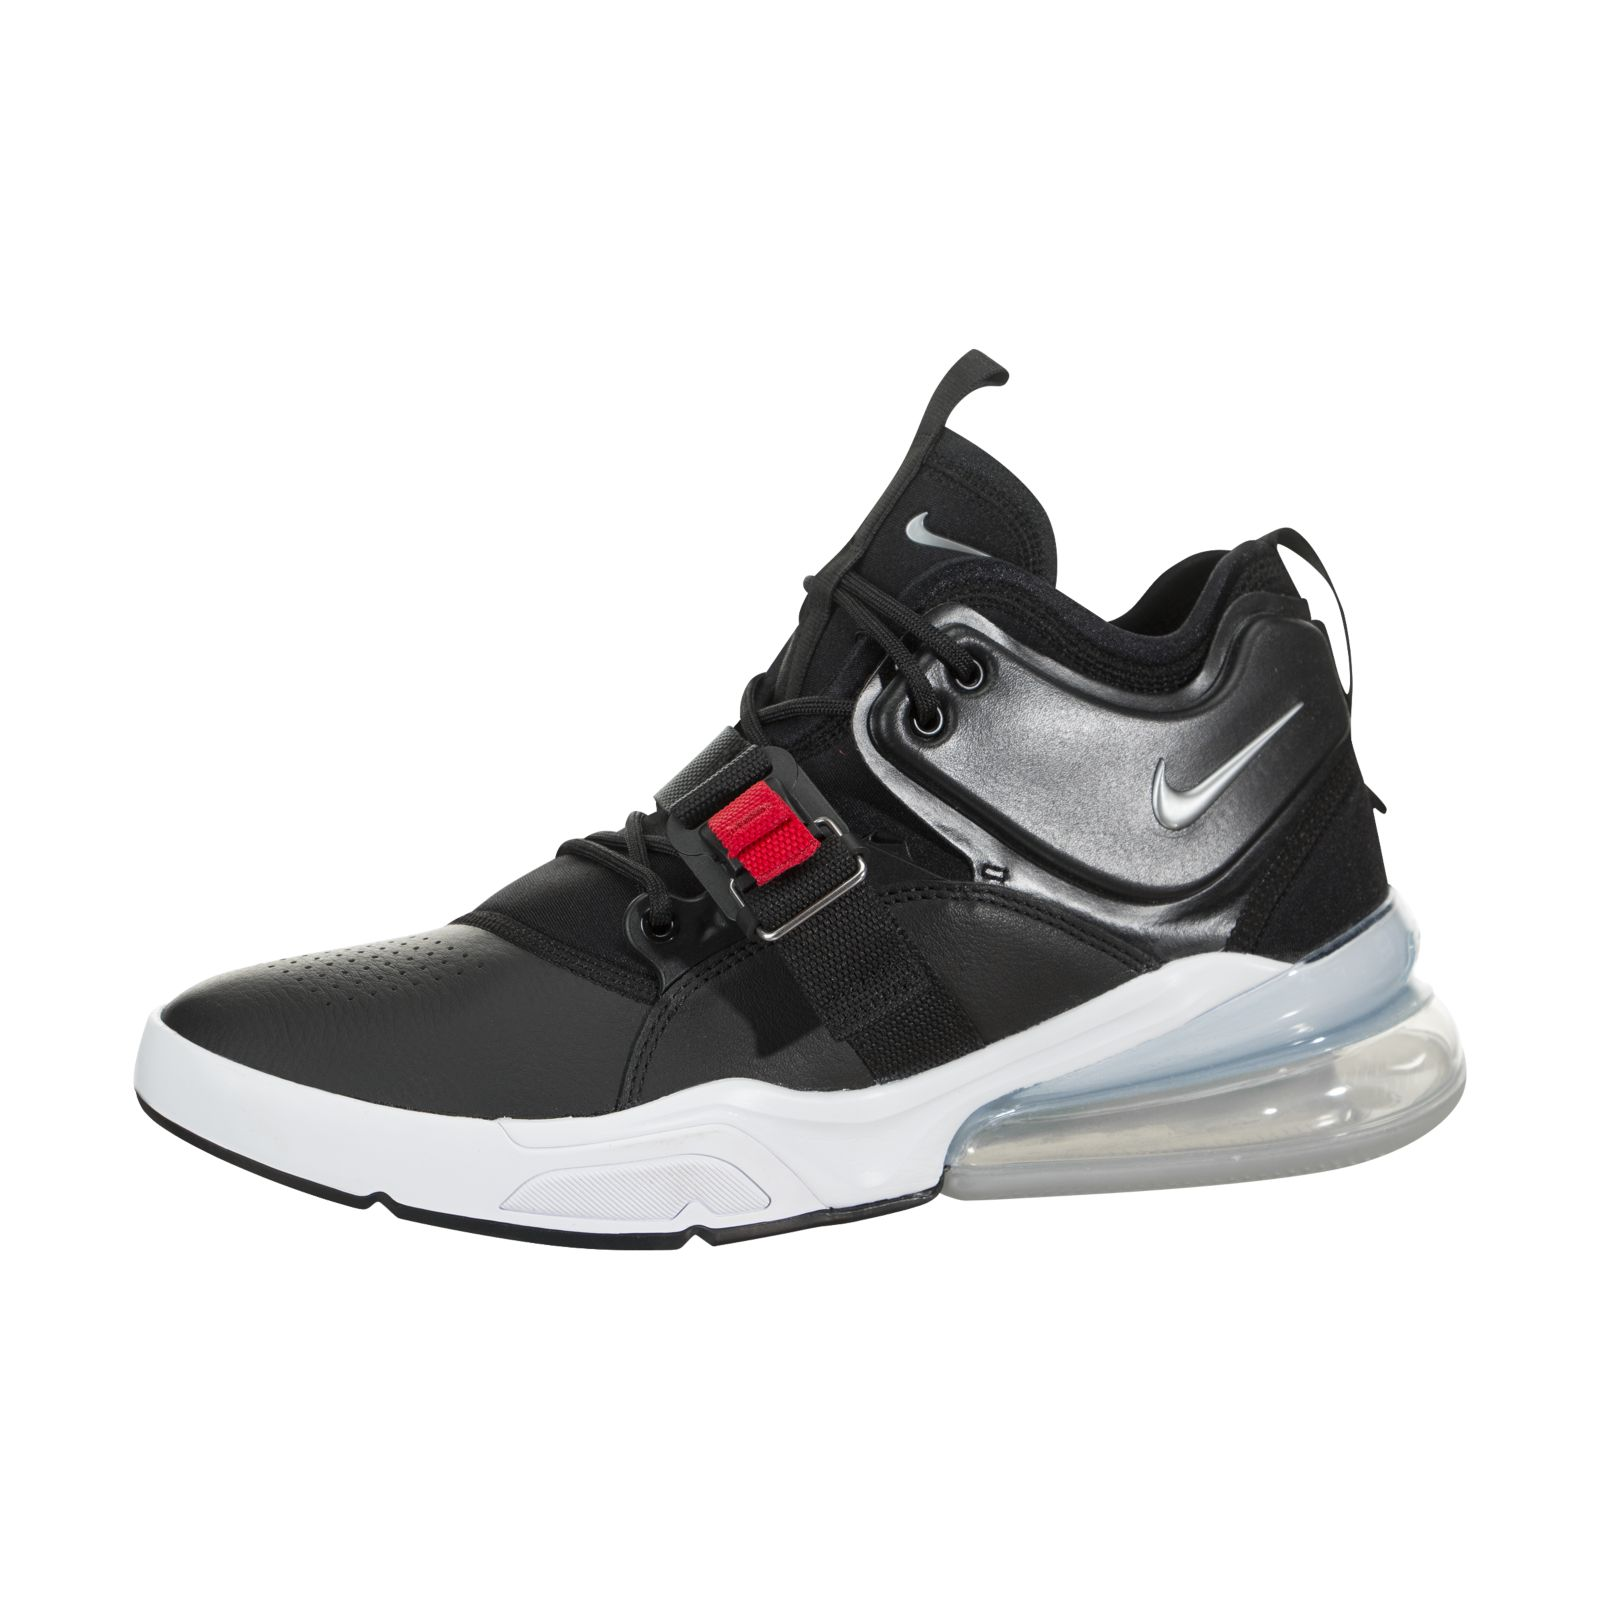 size 40 4c8ad 0a0b8 Image is loading Nike-Air-Force-270-ah6772-001